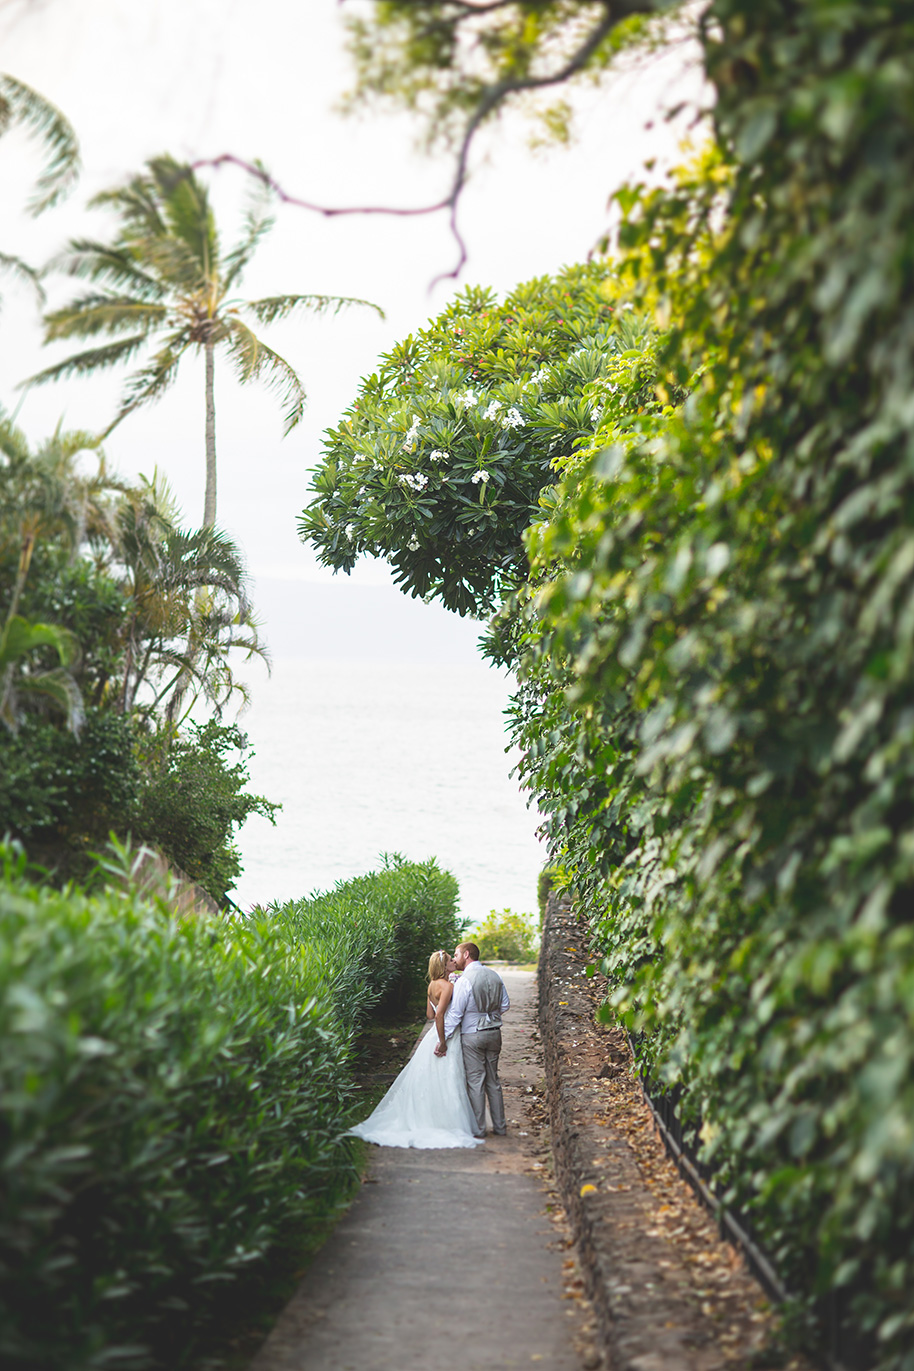 Maui-Beach-Wedding-042816-28